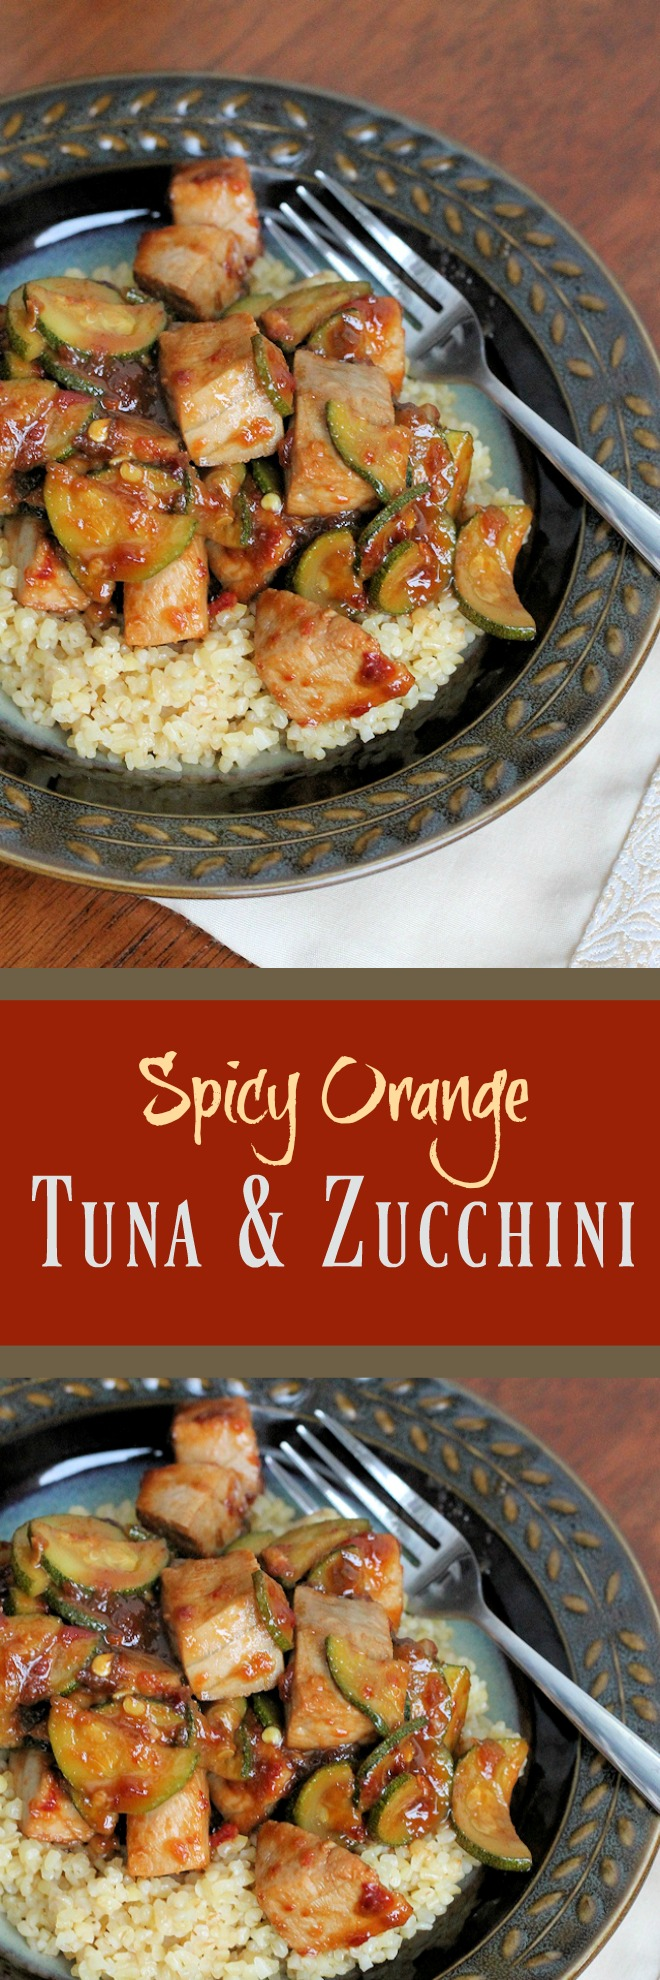 Spicy Orange Tuna & Zucchini Stir Fry